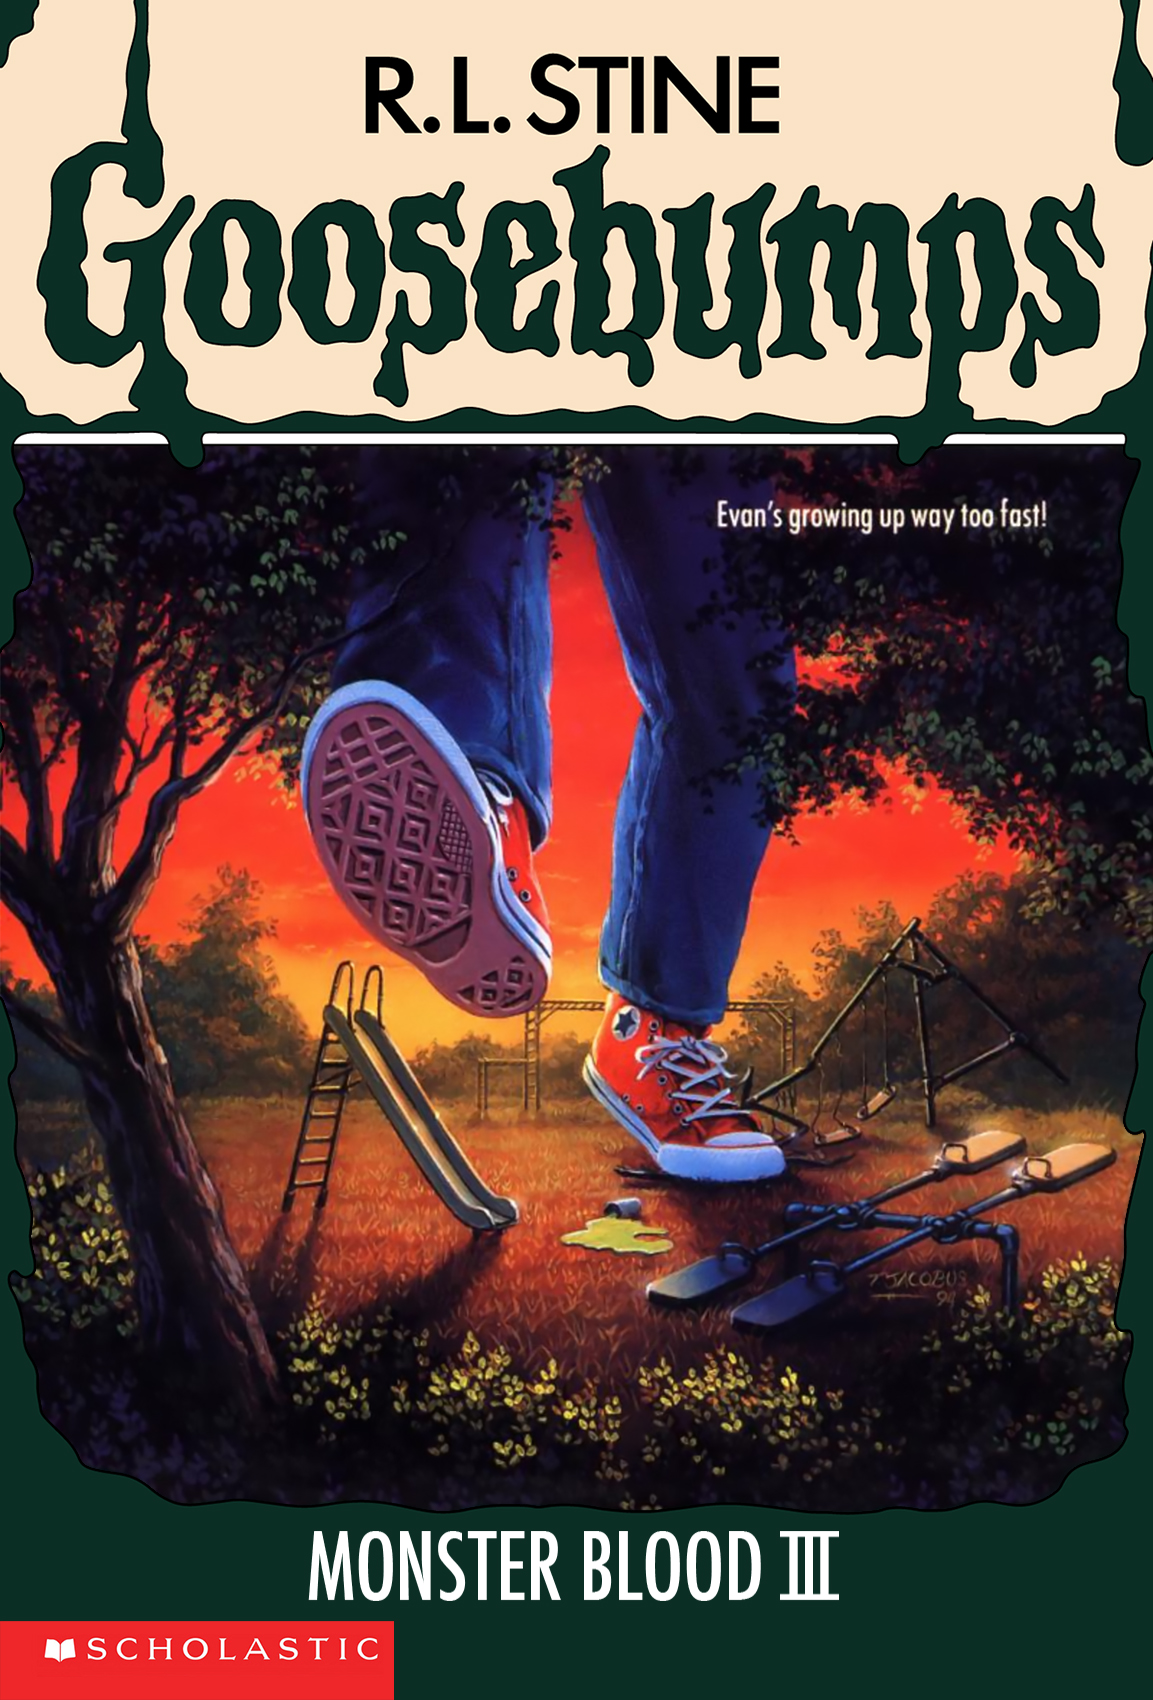 Book Review of Goosebumps  the shocker on shock street   The     The New York Times